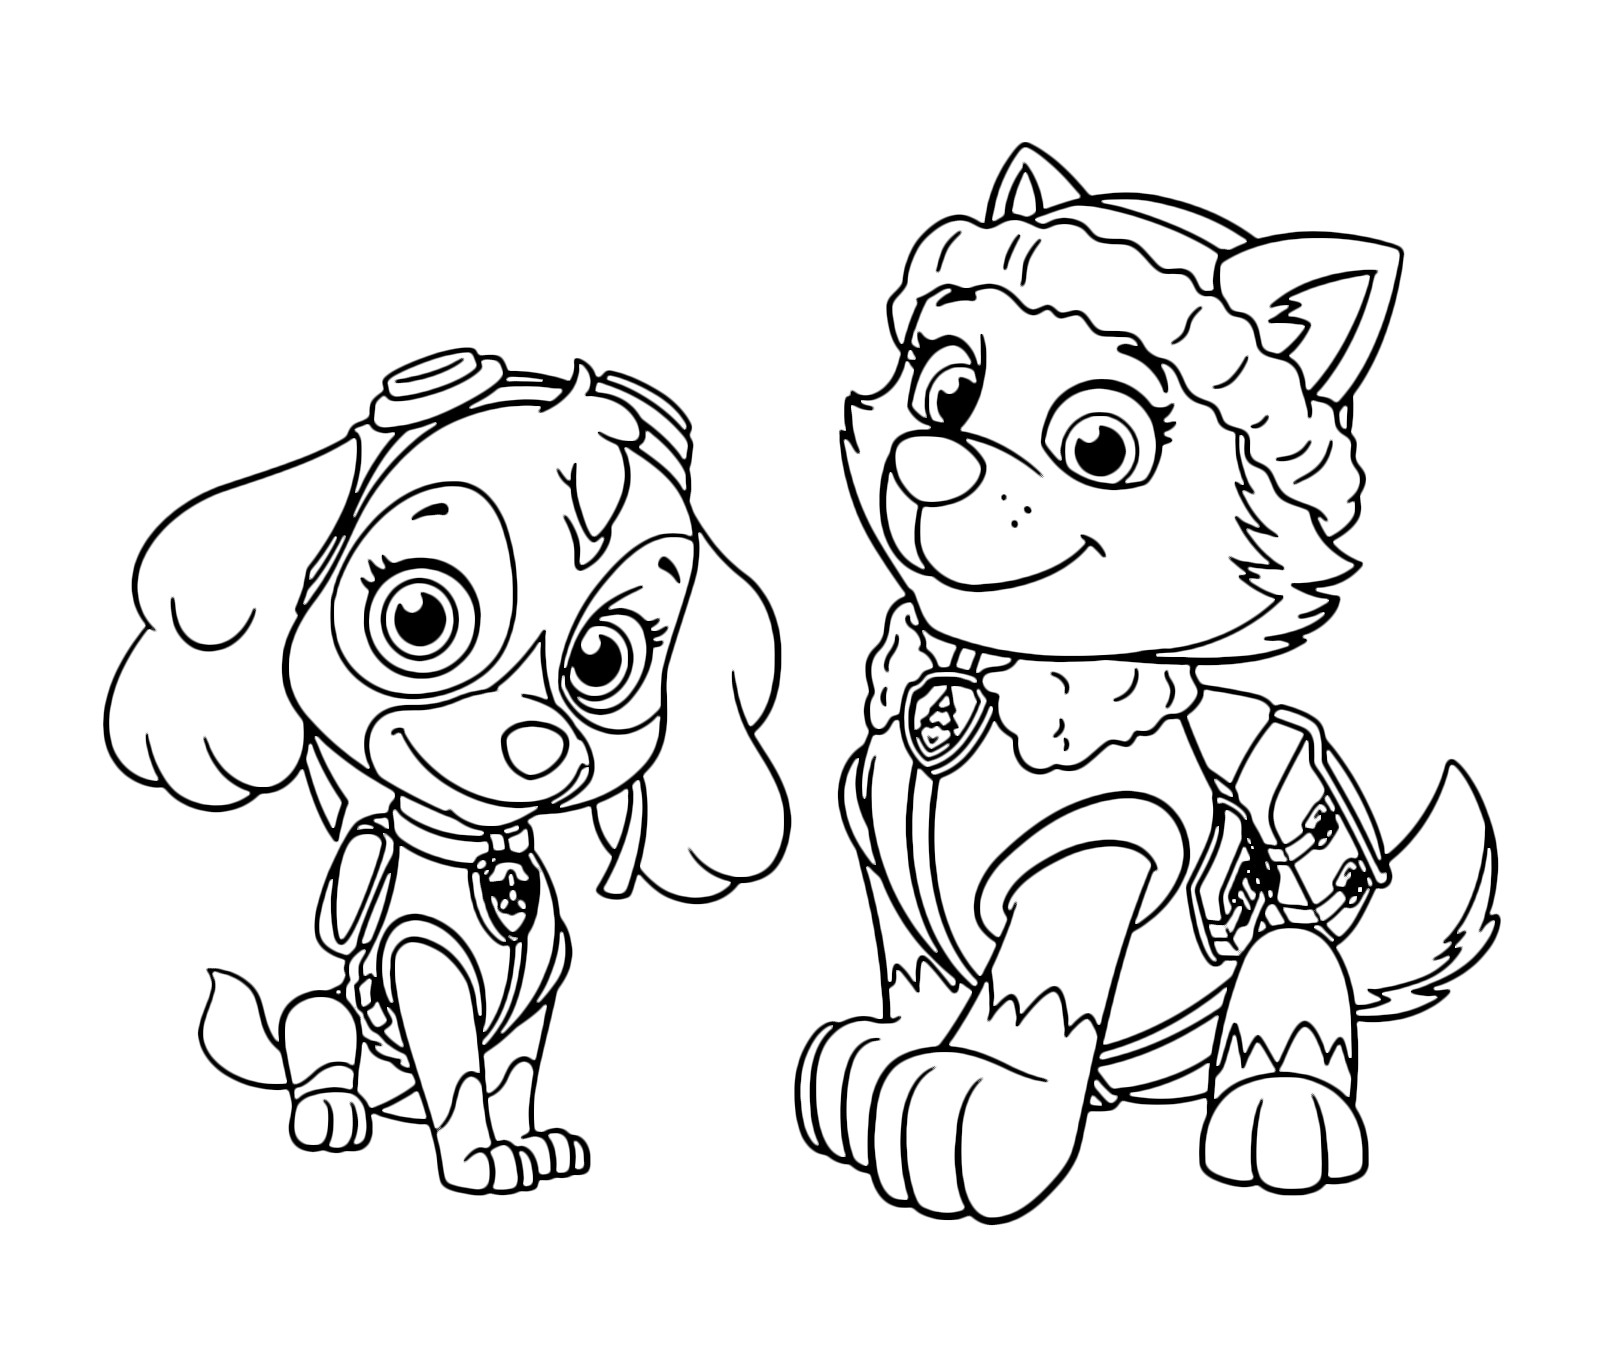 1600x1366 Inspiration Paw Patrol Halloween Coloring Pages Paw Patrol